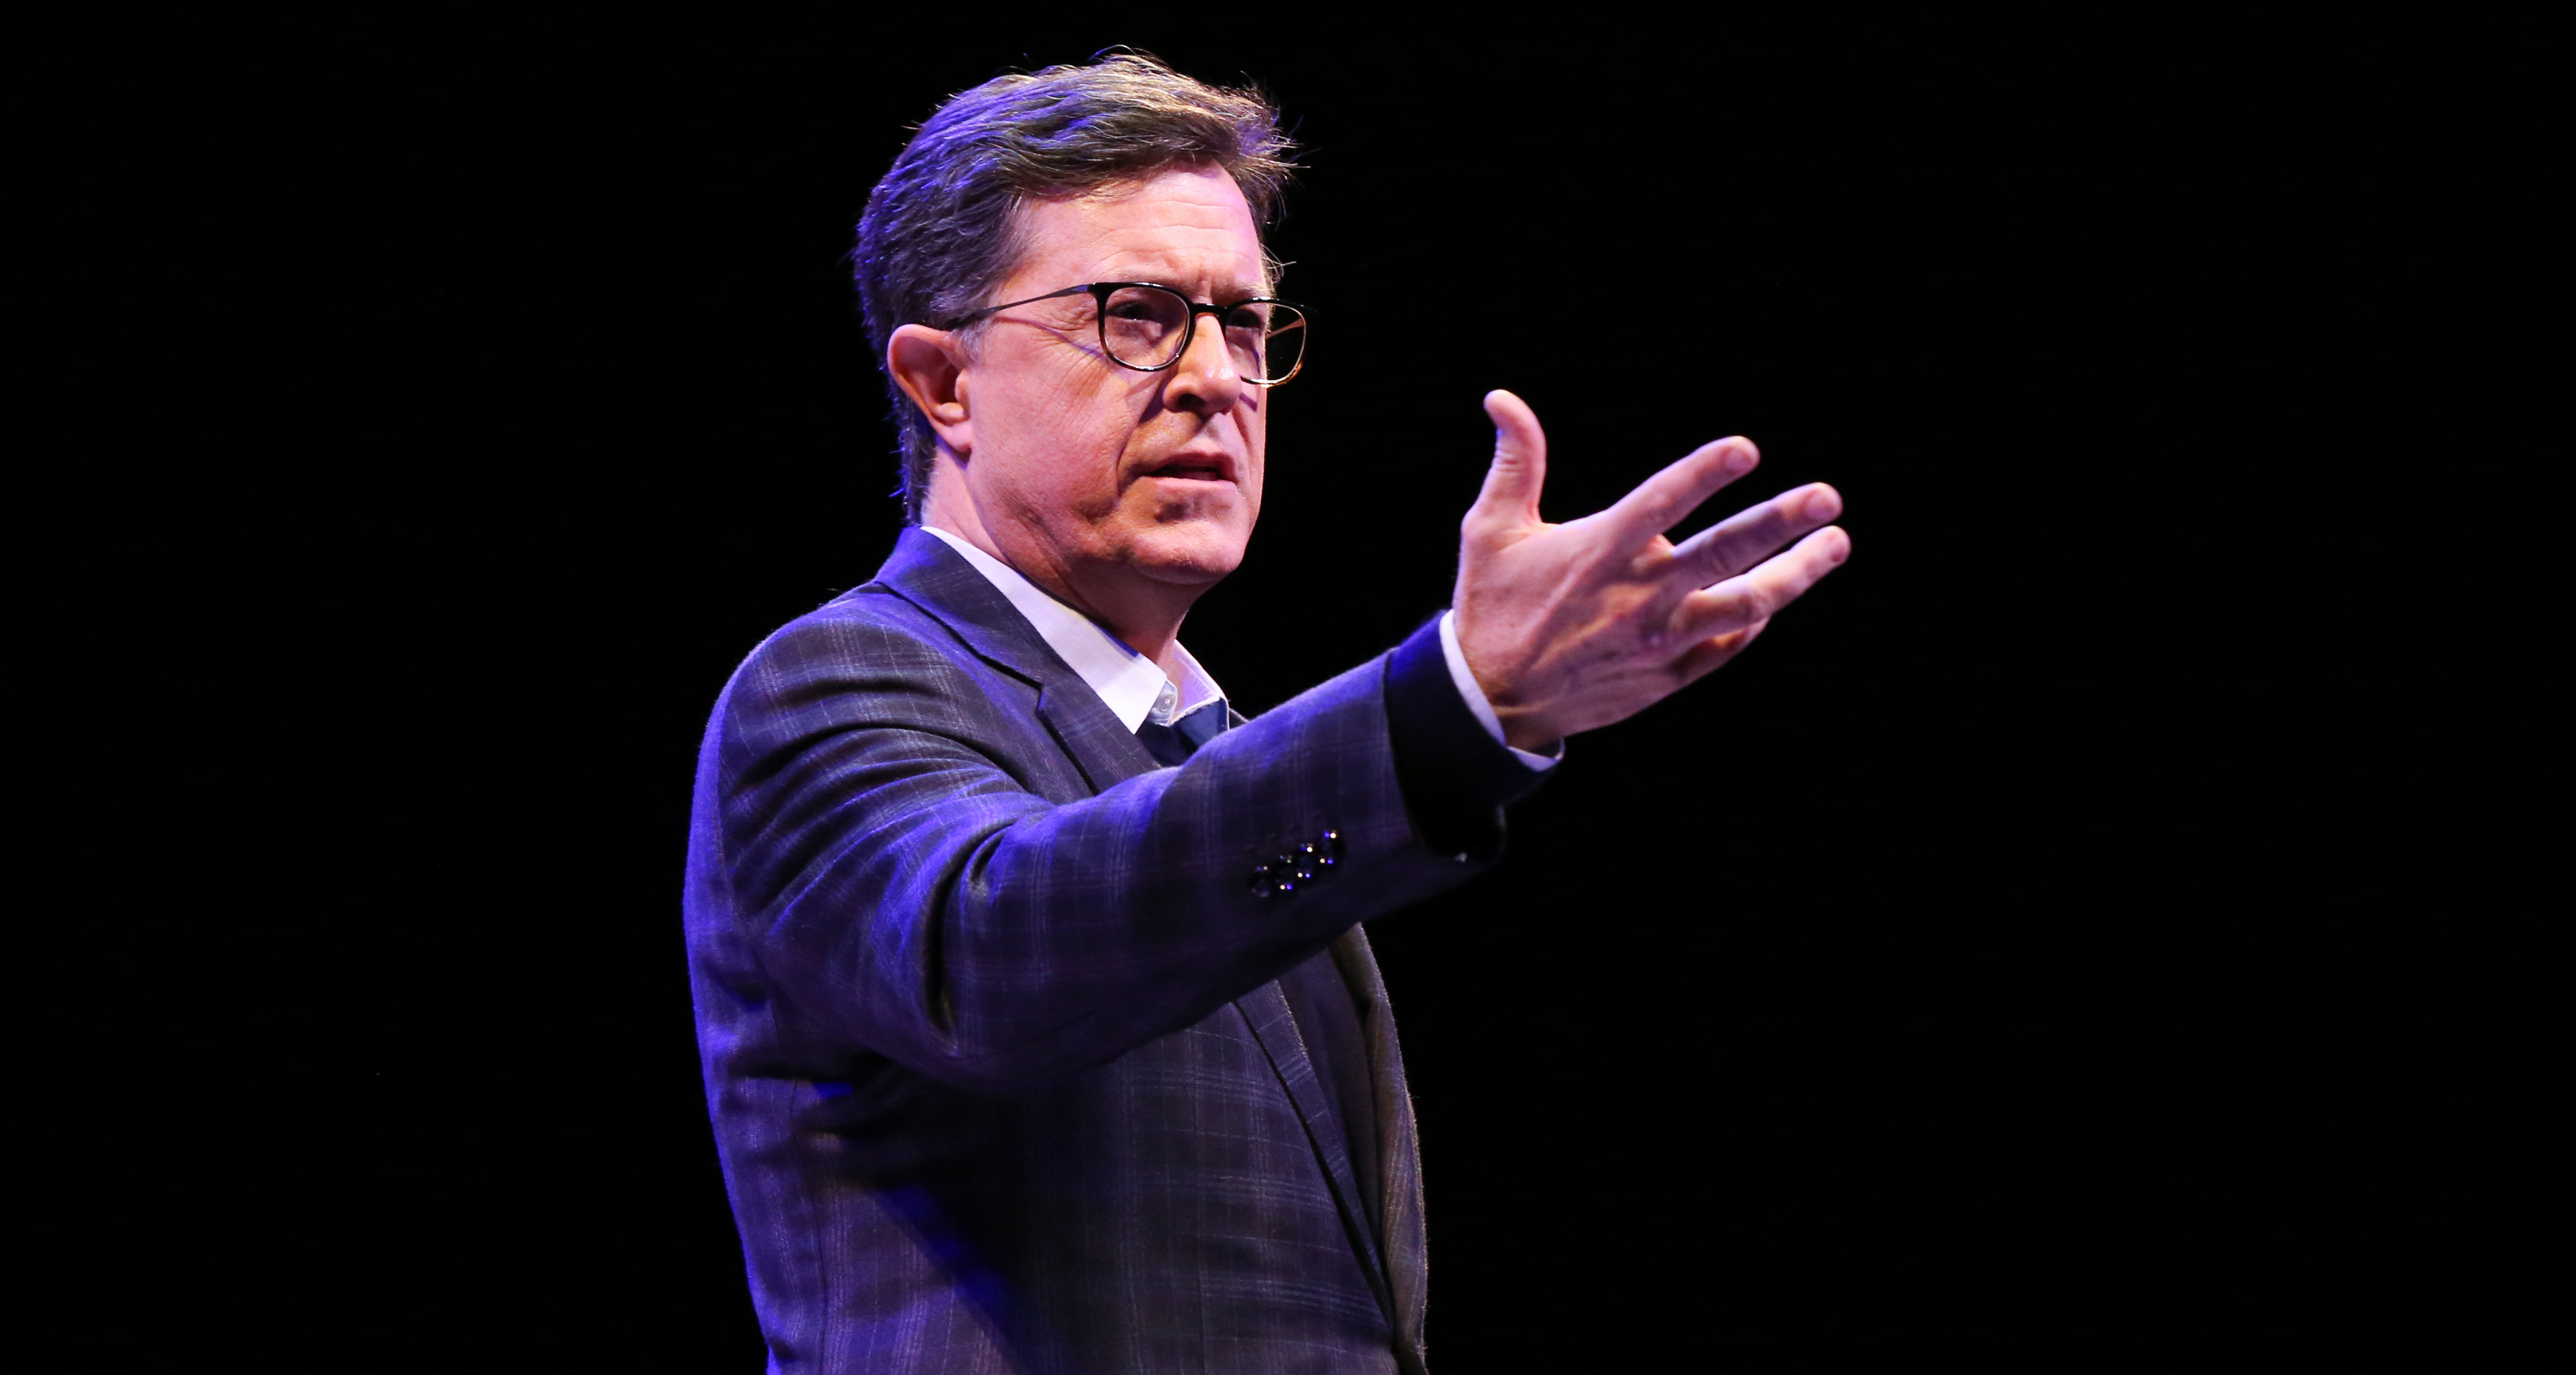 Stephen Colbert to Host Virtual Bloomsday Event